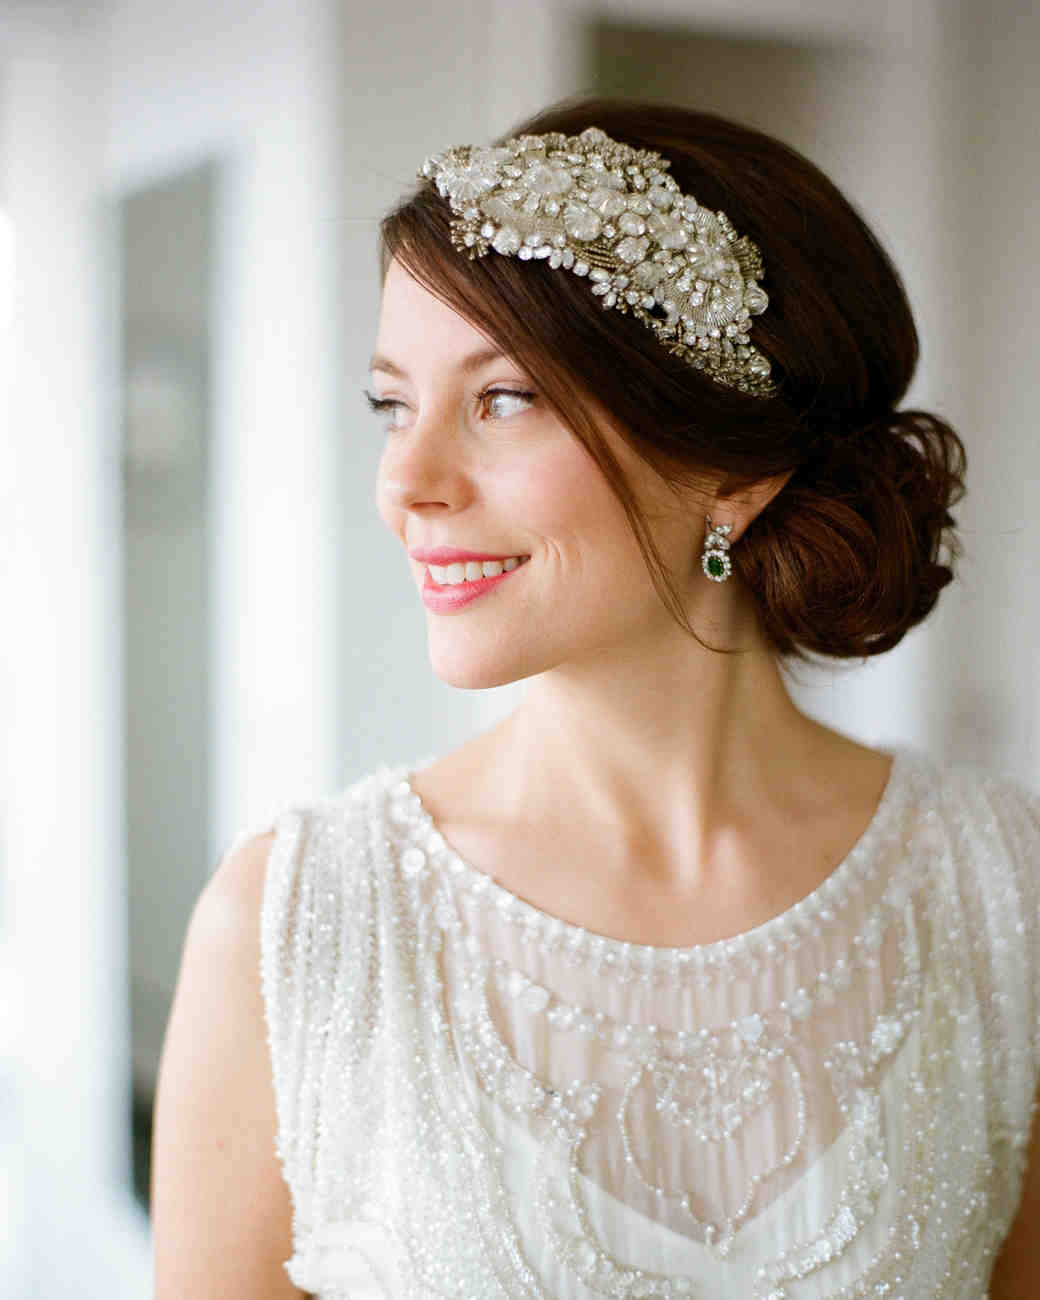 28 Prettiest Wedding Hairstyles: 29 Cool Wedding Hairstyles For The Modern Bride